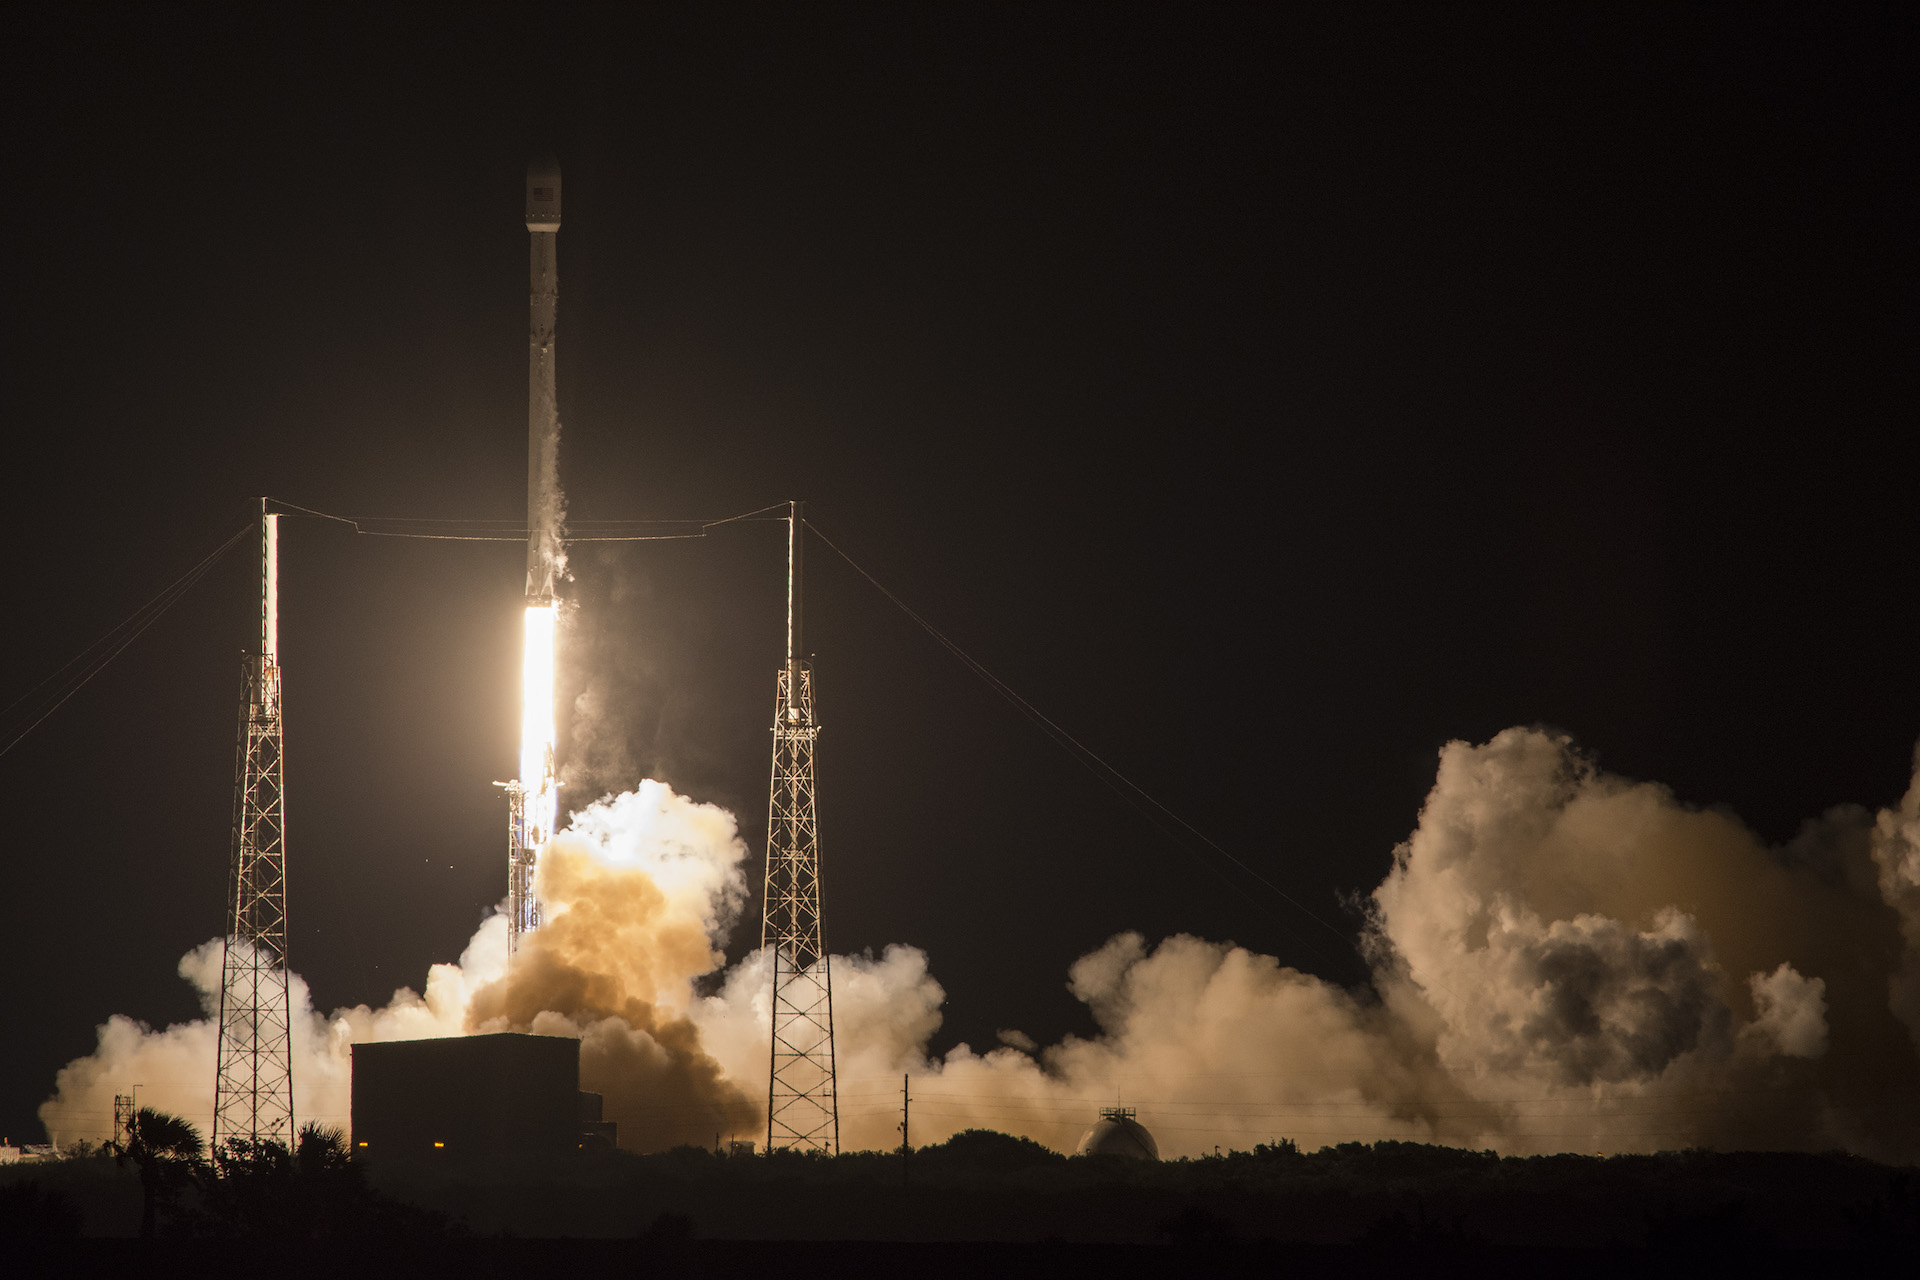 drone apps with Spacex Successfully Lands Falcon 9 Jcsat 14 on Kitty Hawk Flying Car further Earth Observation Remote Sensing Geospatial Data together with 360 House Fire Video Escape Planner New Zealand Fire Service likewise Spacex Successfully Lands Falcon 9 Jcsat 14 moreover Kawasaki Backgrounds Kawasaki Ninja Wallpapers For Download.